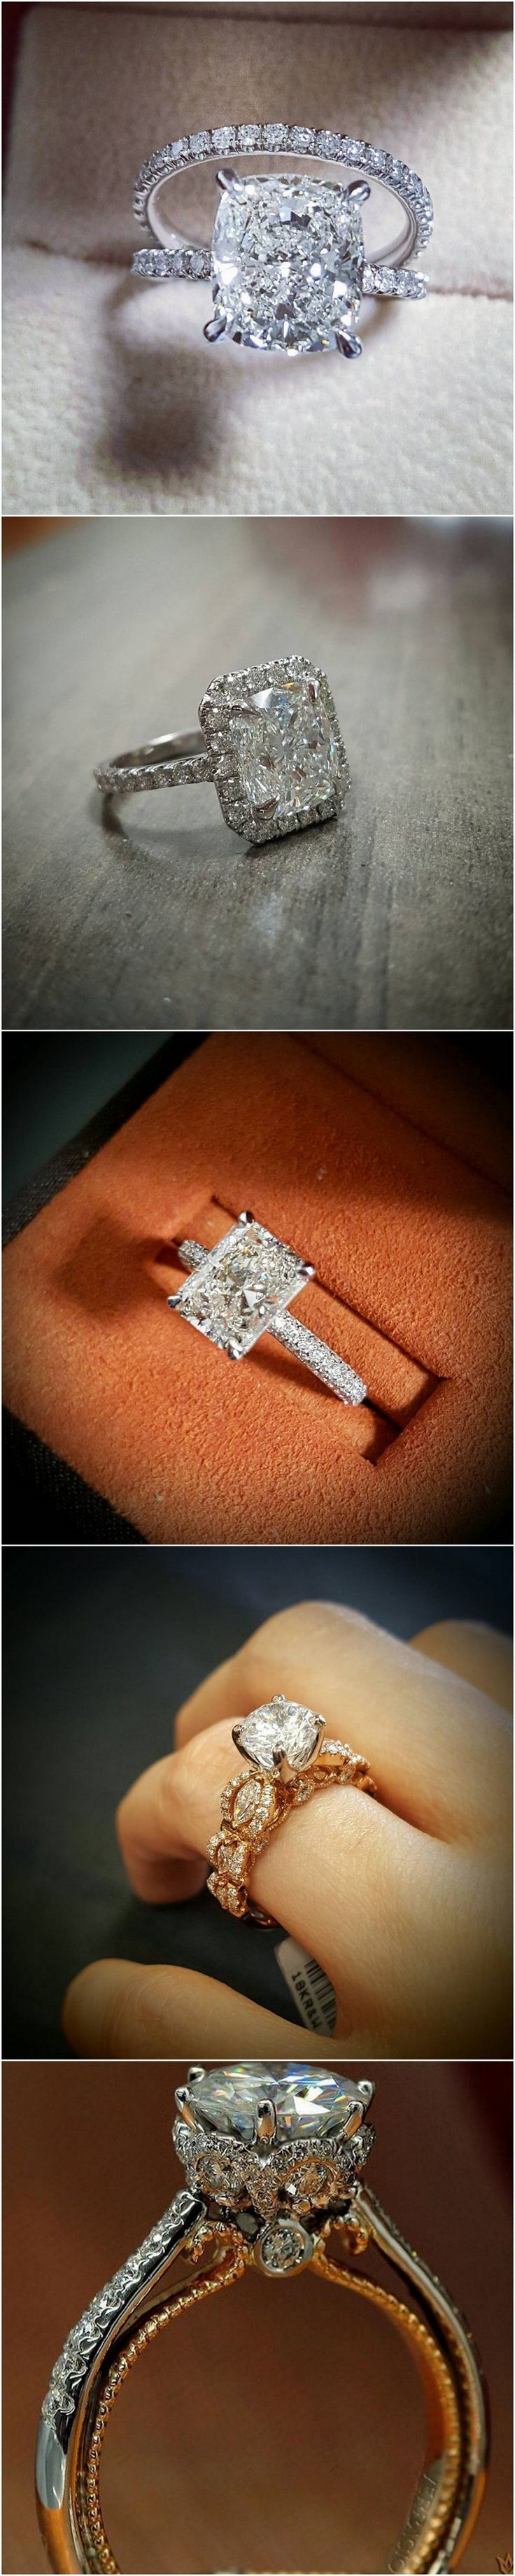 vows by quad best engagements top images on wedding engagement diamondmansion rings stunning pinterest